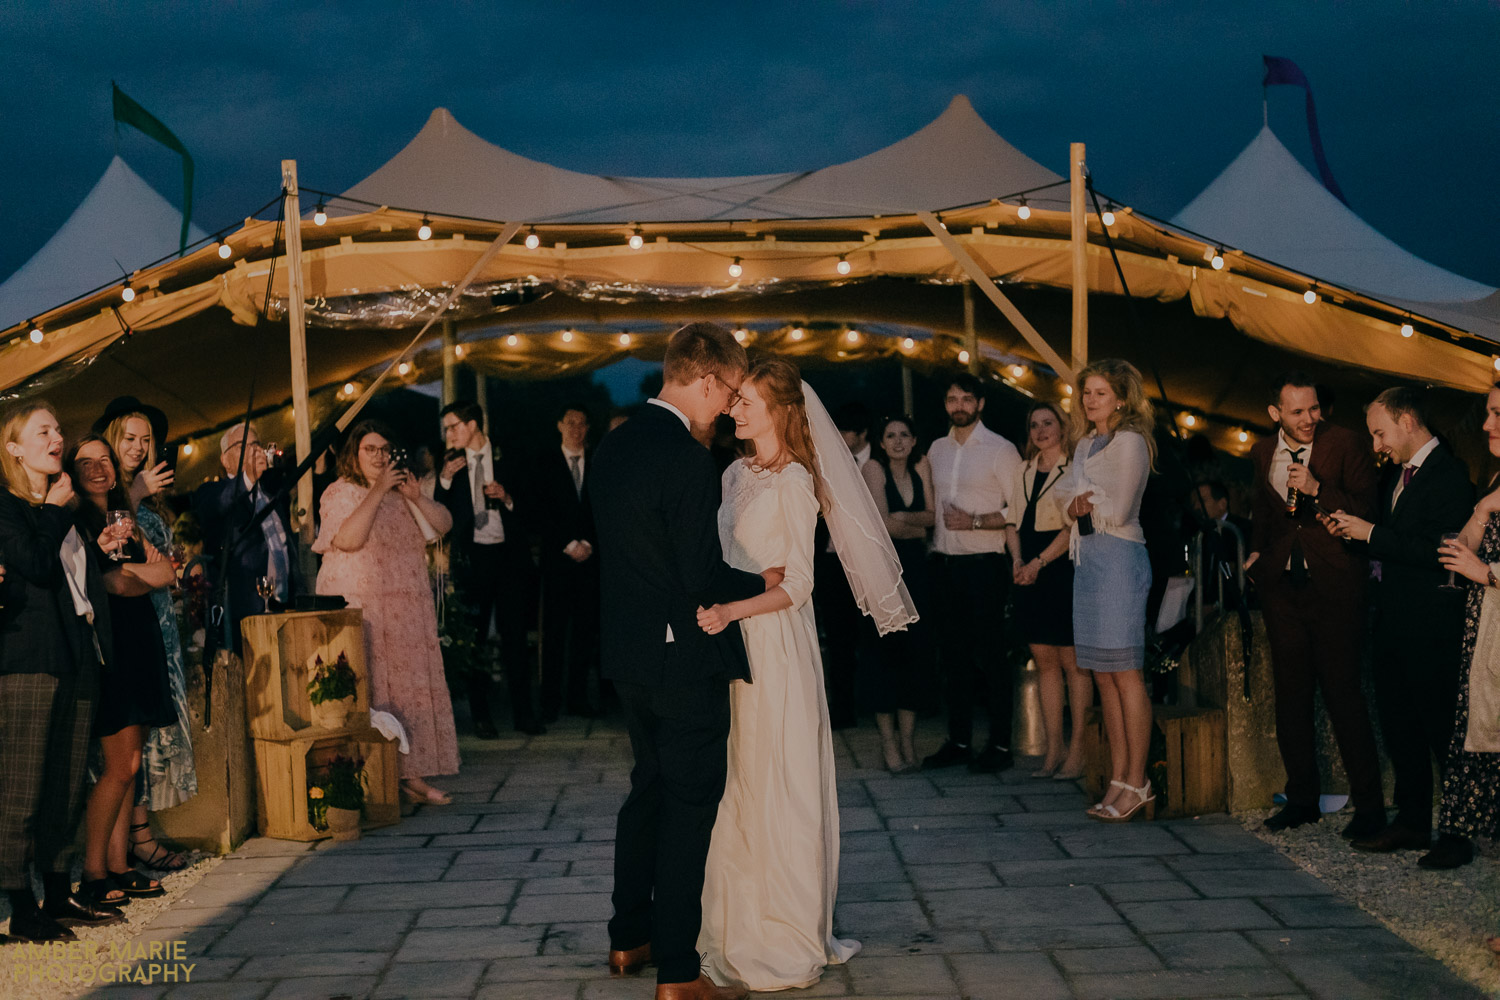 Bride and groom dancing in front of Tipi at Jenners Barn wedding